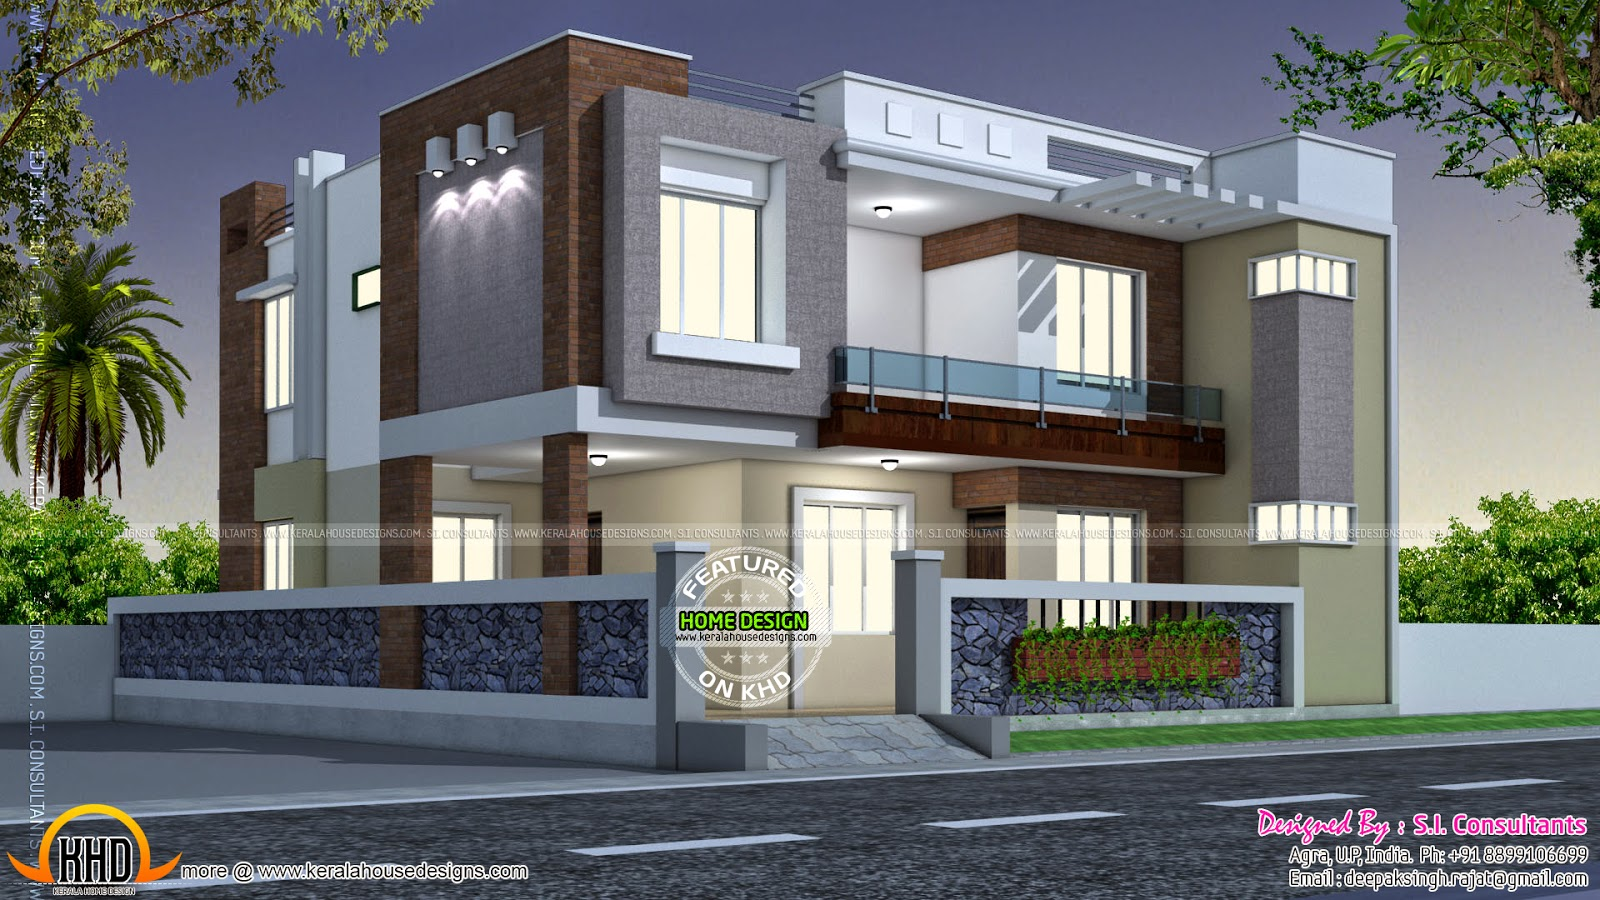 House plans and design modern house plans for india for Best indian architectural affordable home designs